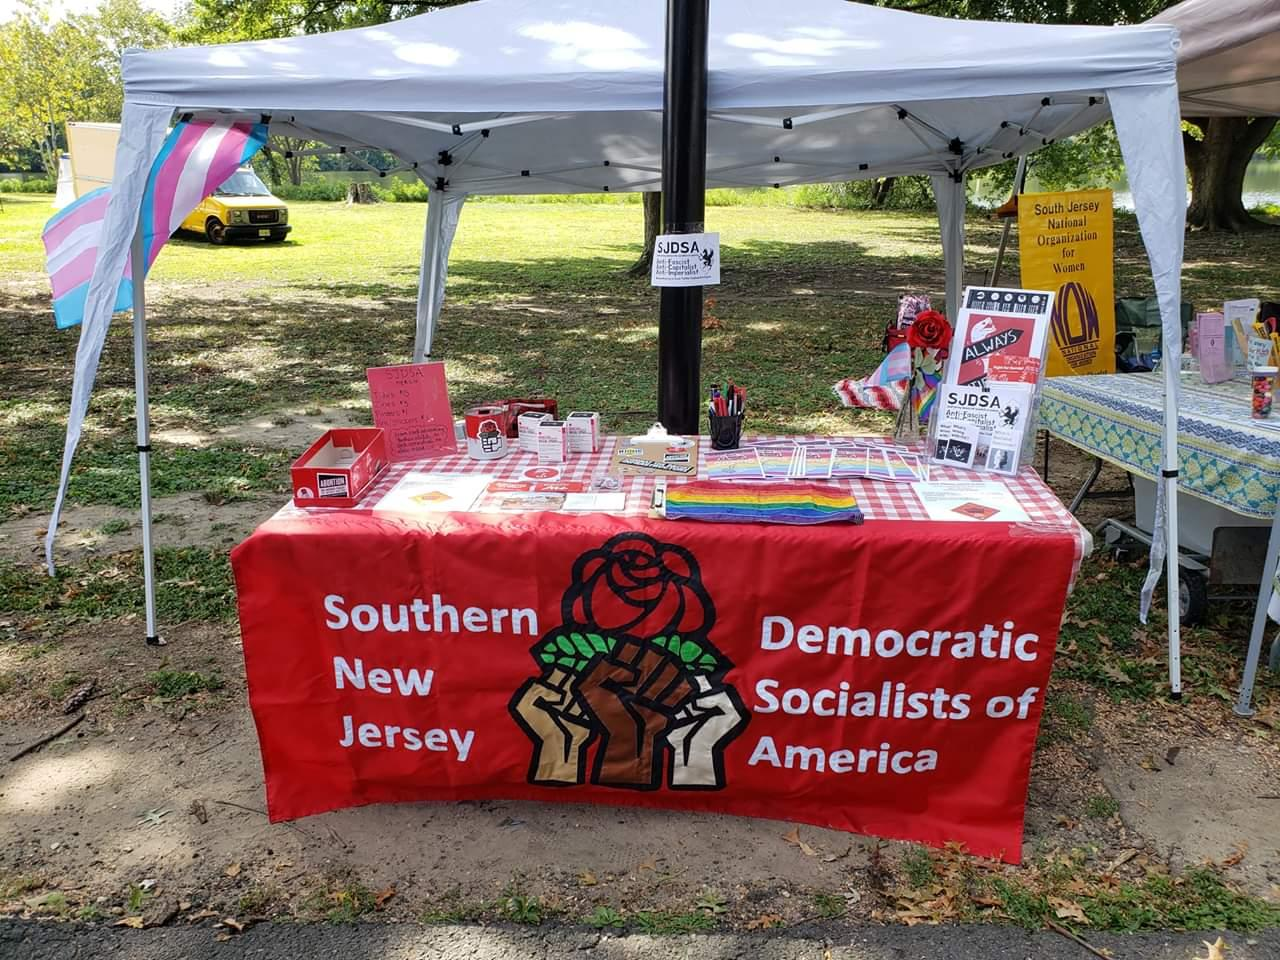 All set up and ready for #SNJGayPride! https://t.co/GxNceS3aih